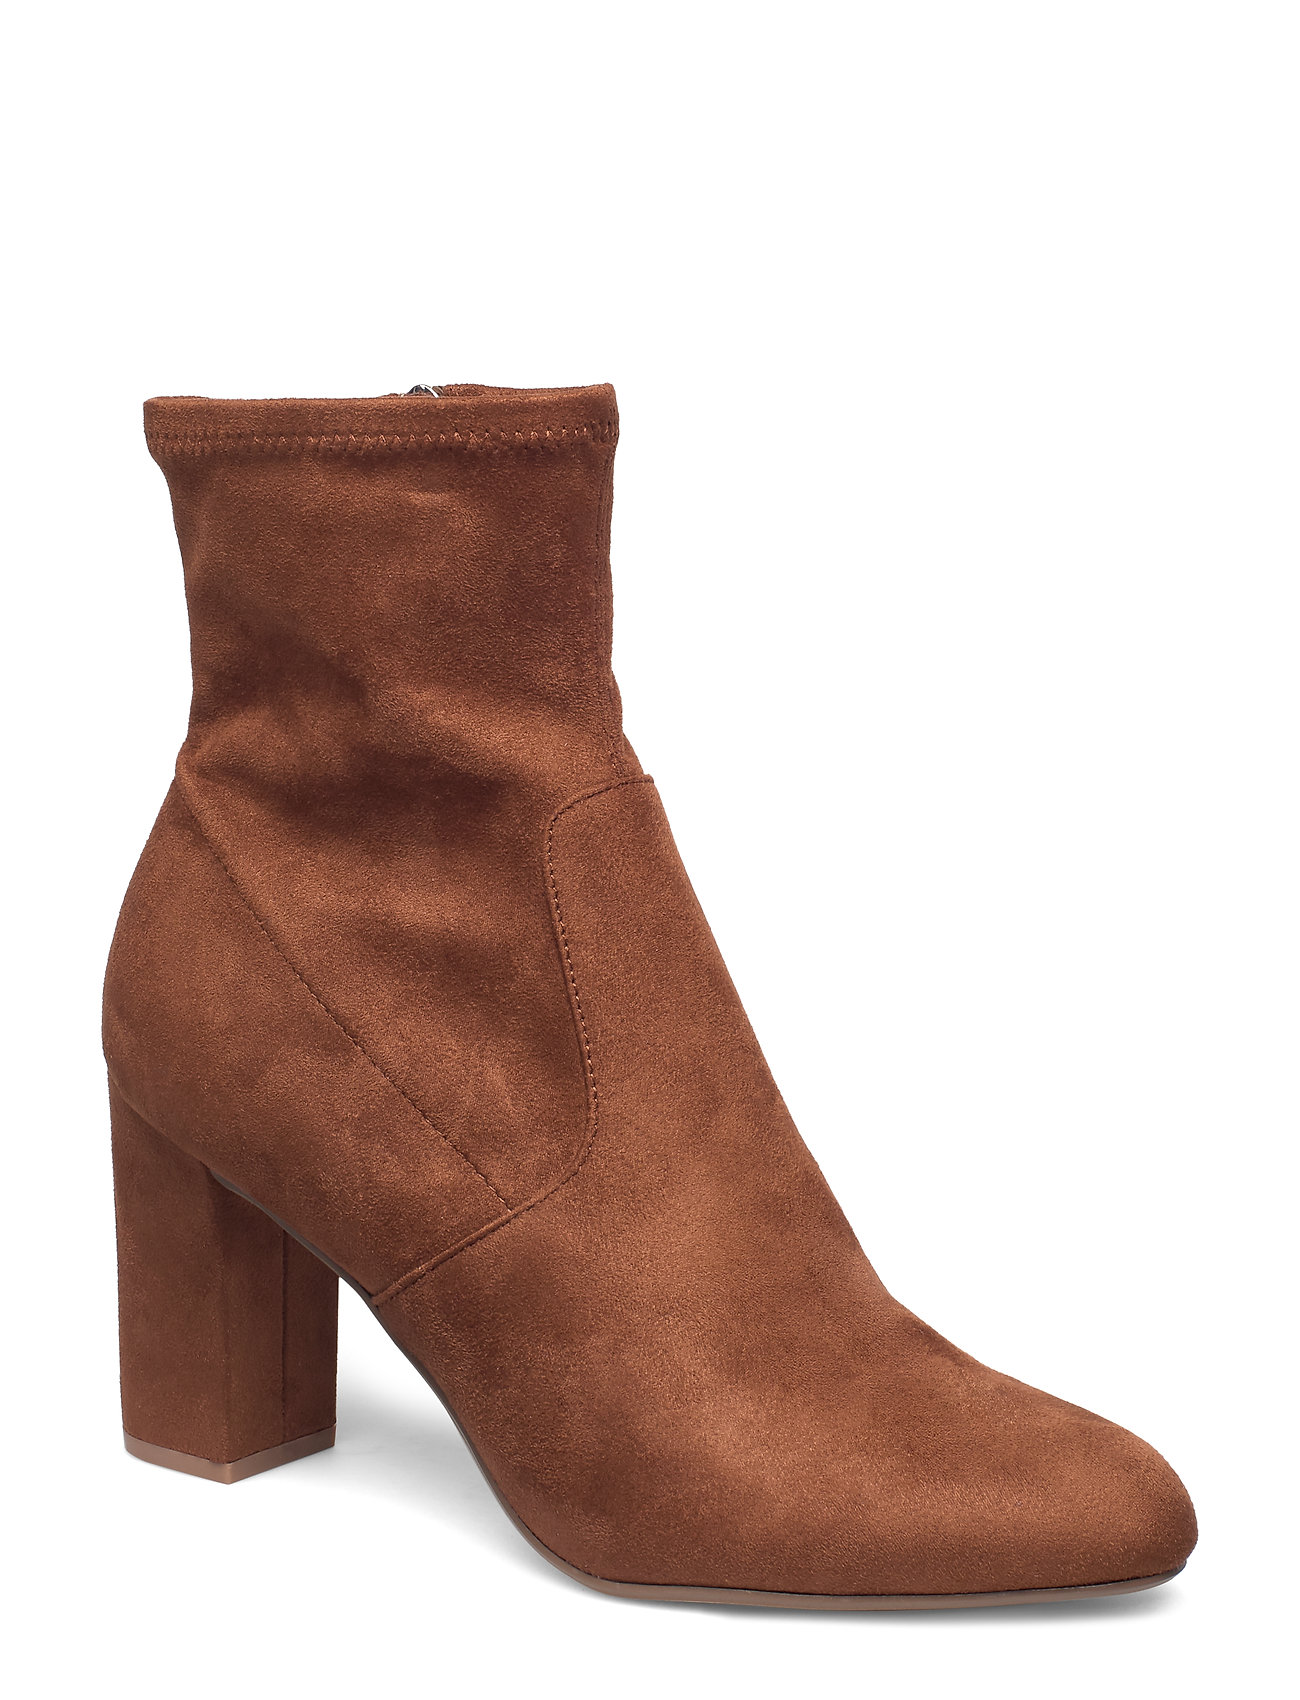 Image of Avenue Ankle Boot Shoes Boots Ankle Boots Ankle Boots With Heel Brun Steve Madden (3233524355)